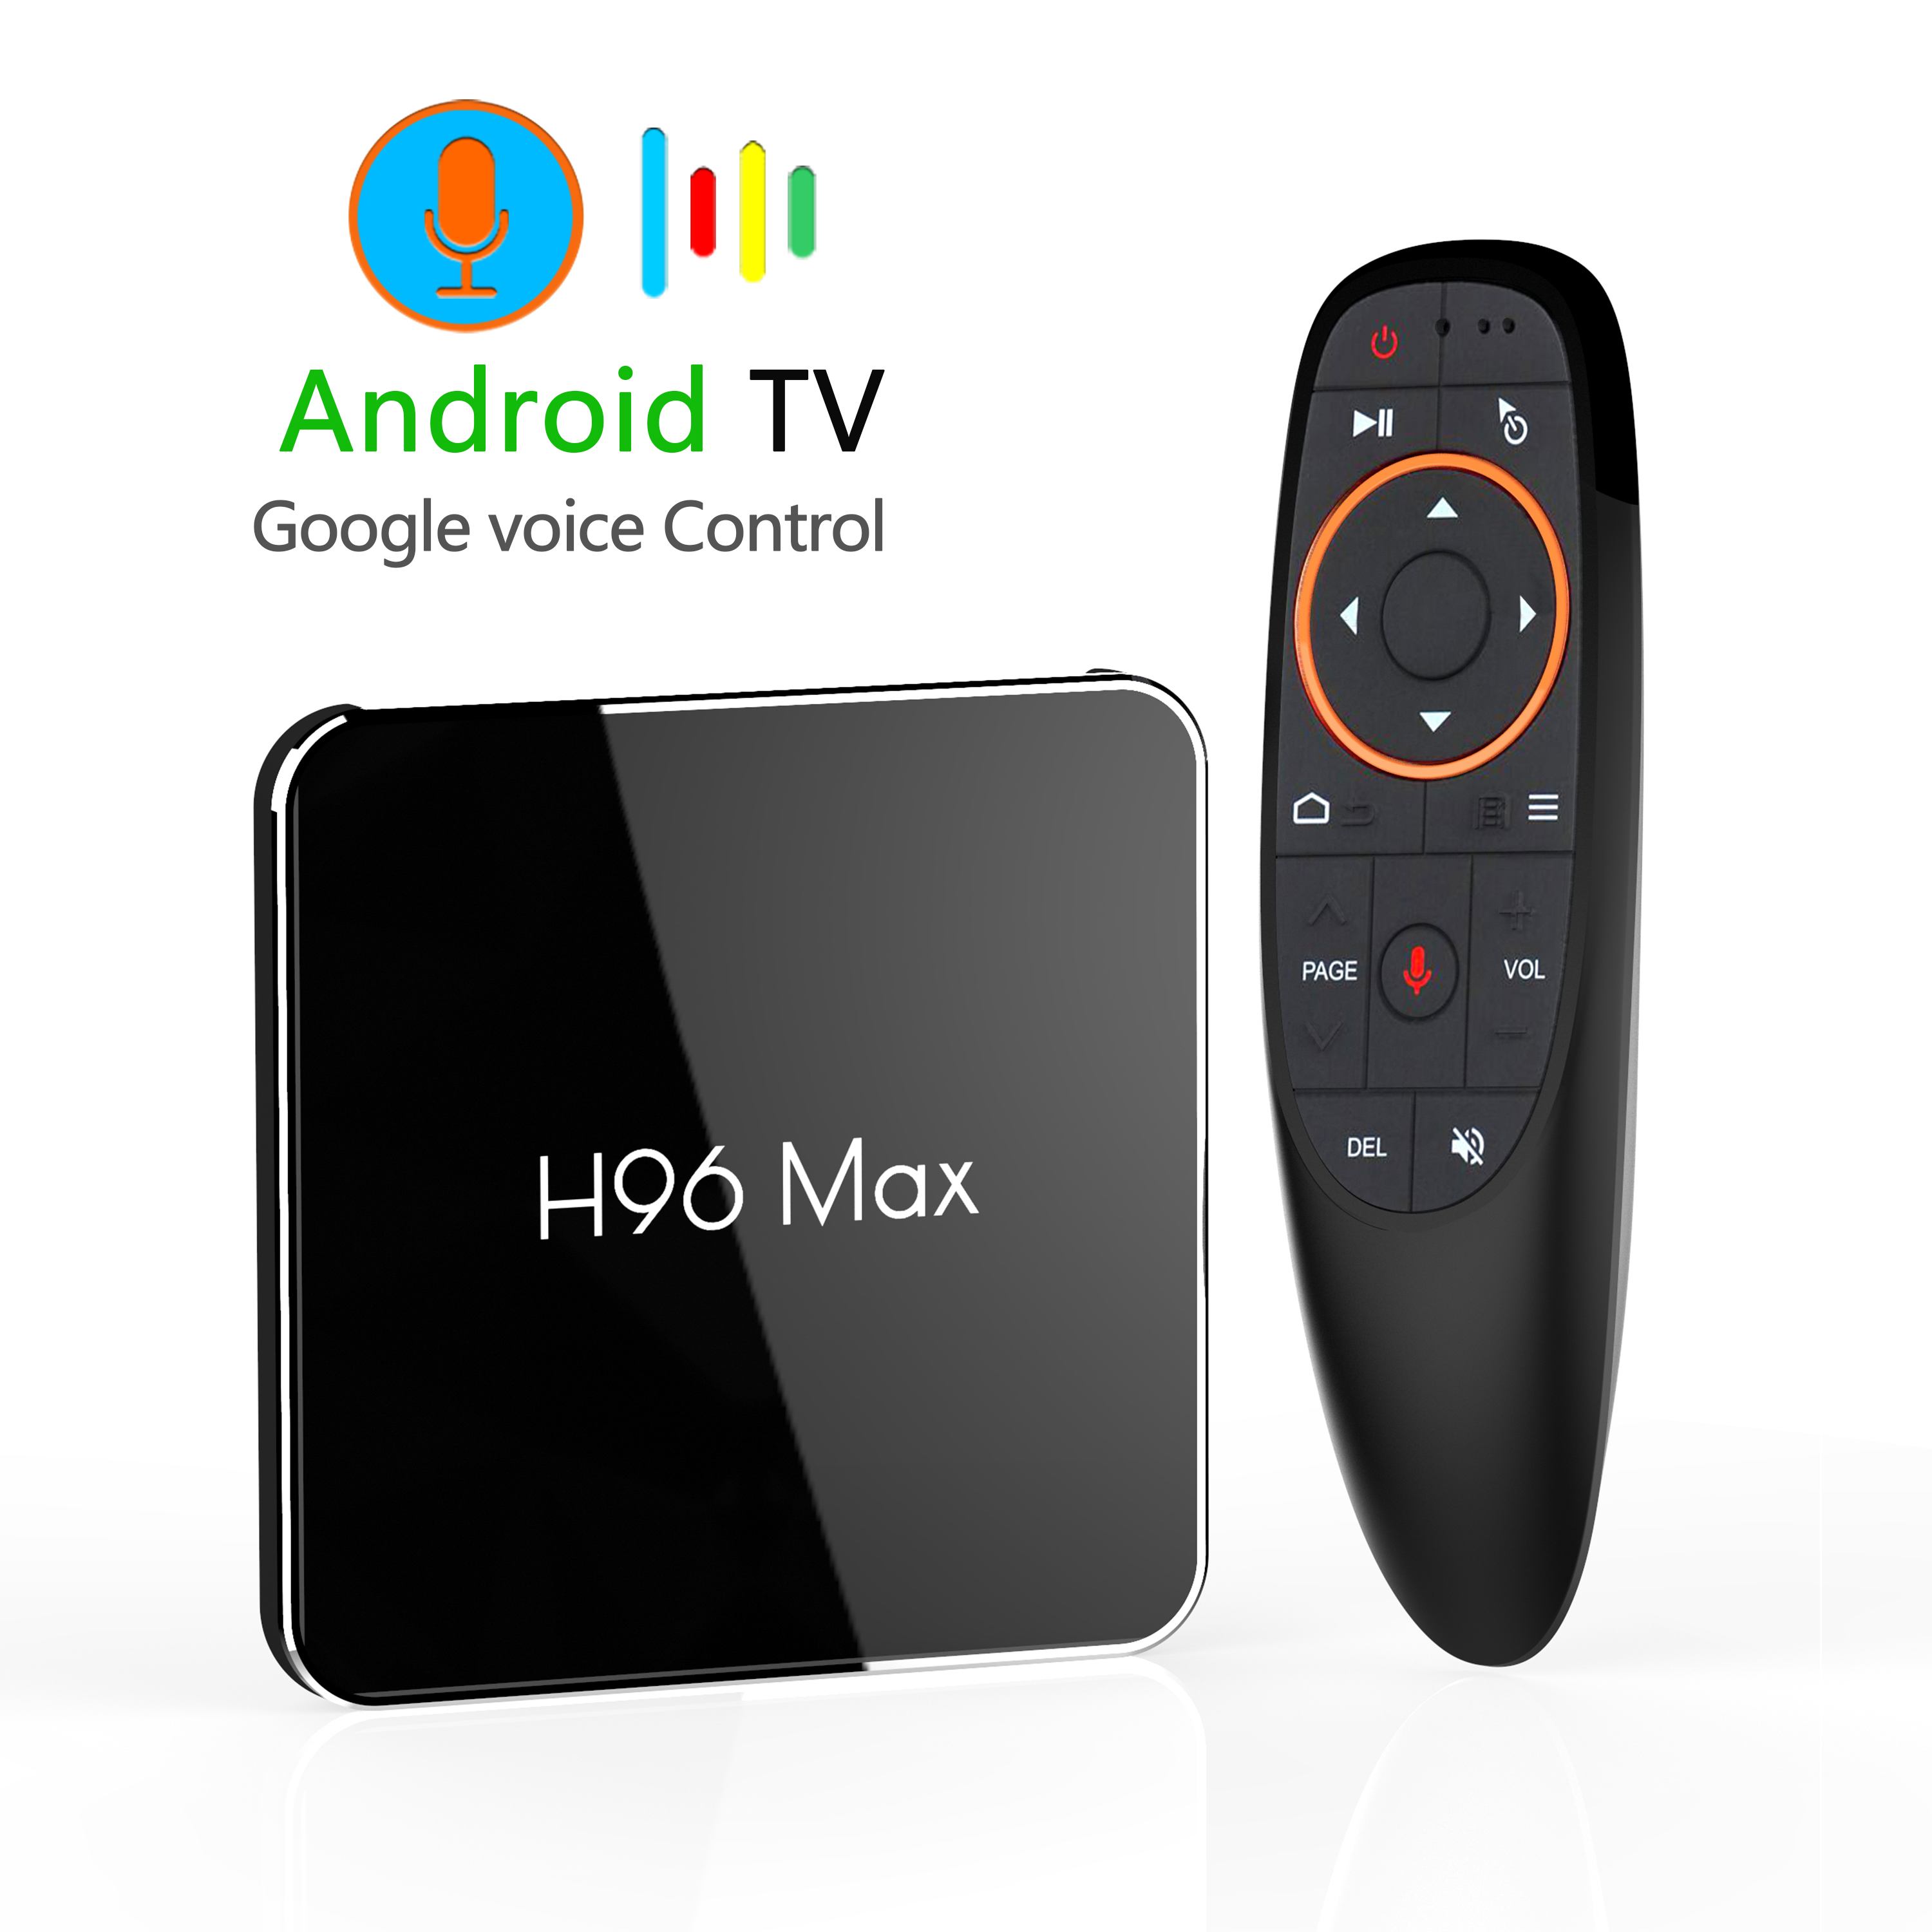 H96 MAX X2 Android 9.0 Smart TV Box Amlogic S905X2 4GB 64GB 5G Wifi H.265 4K <font><b>USB3.0</b></font> Google Play Store Youtube Media player image